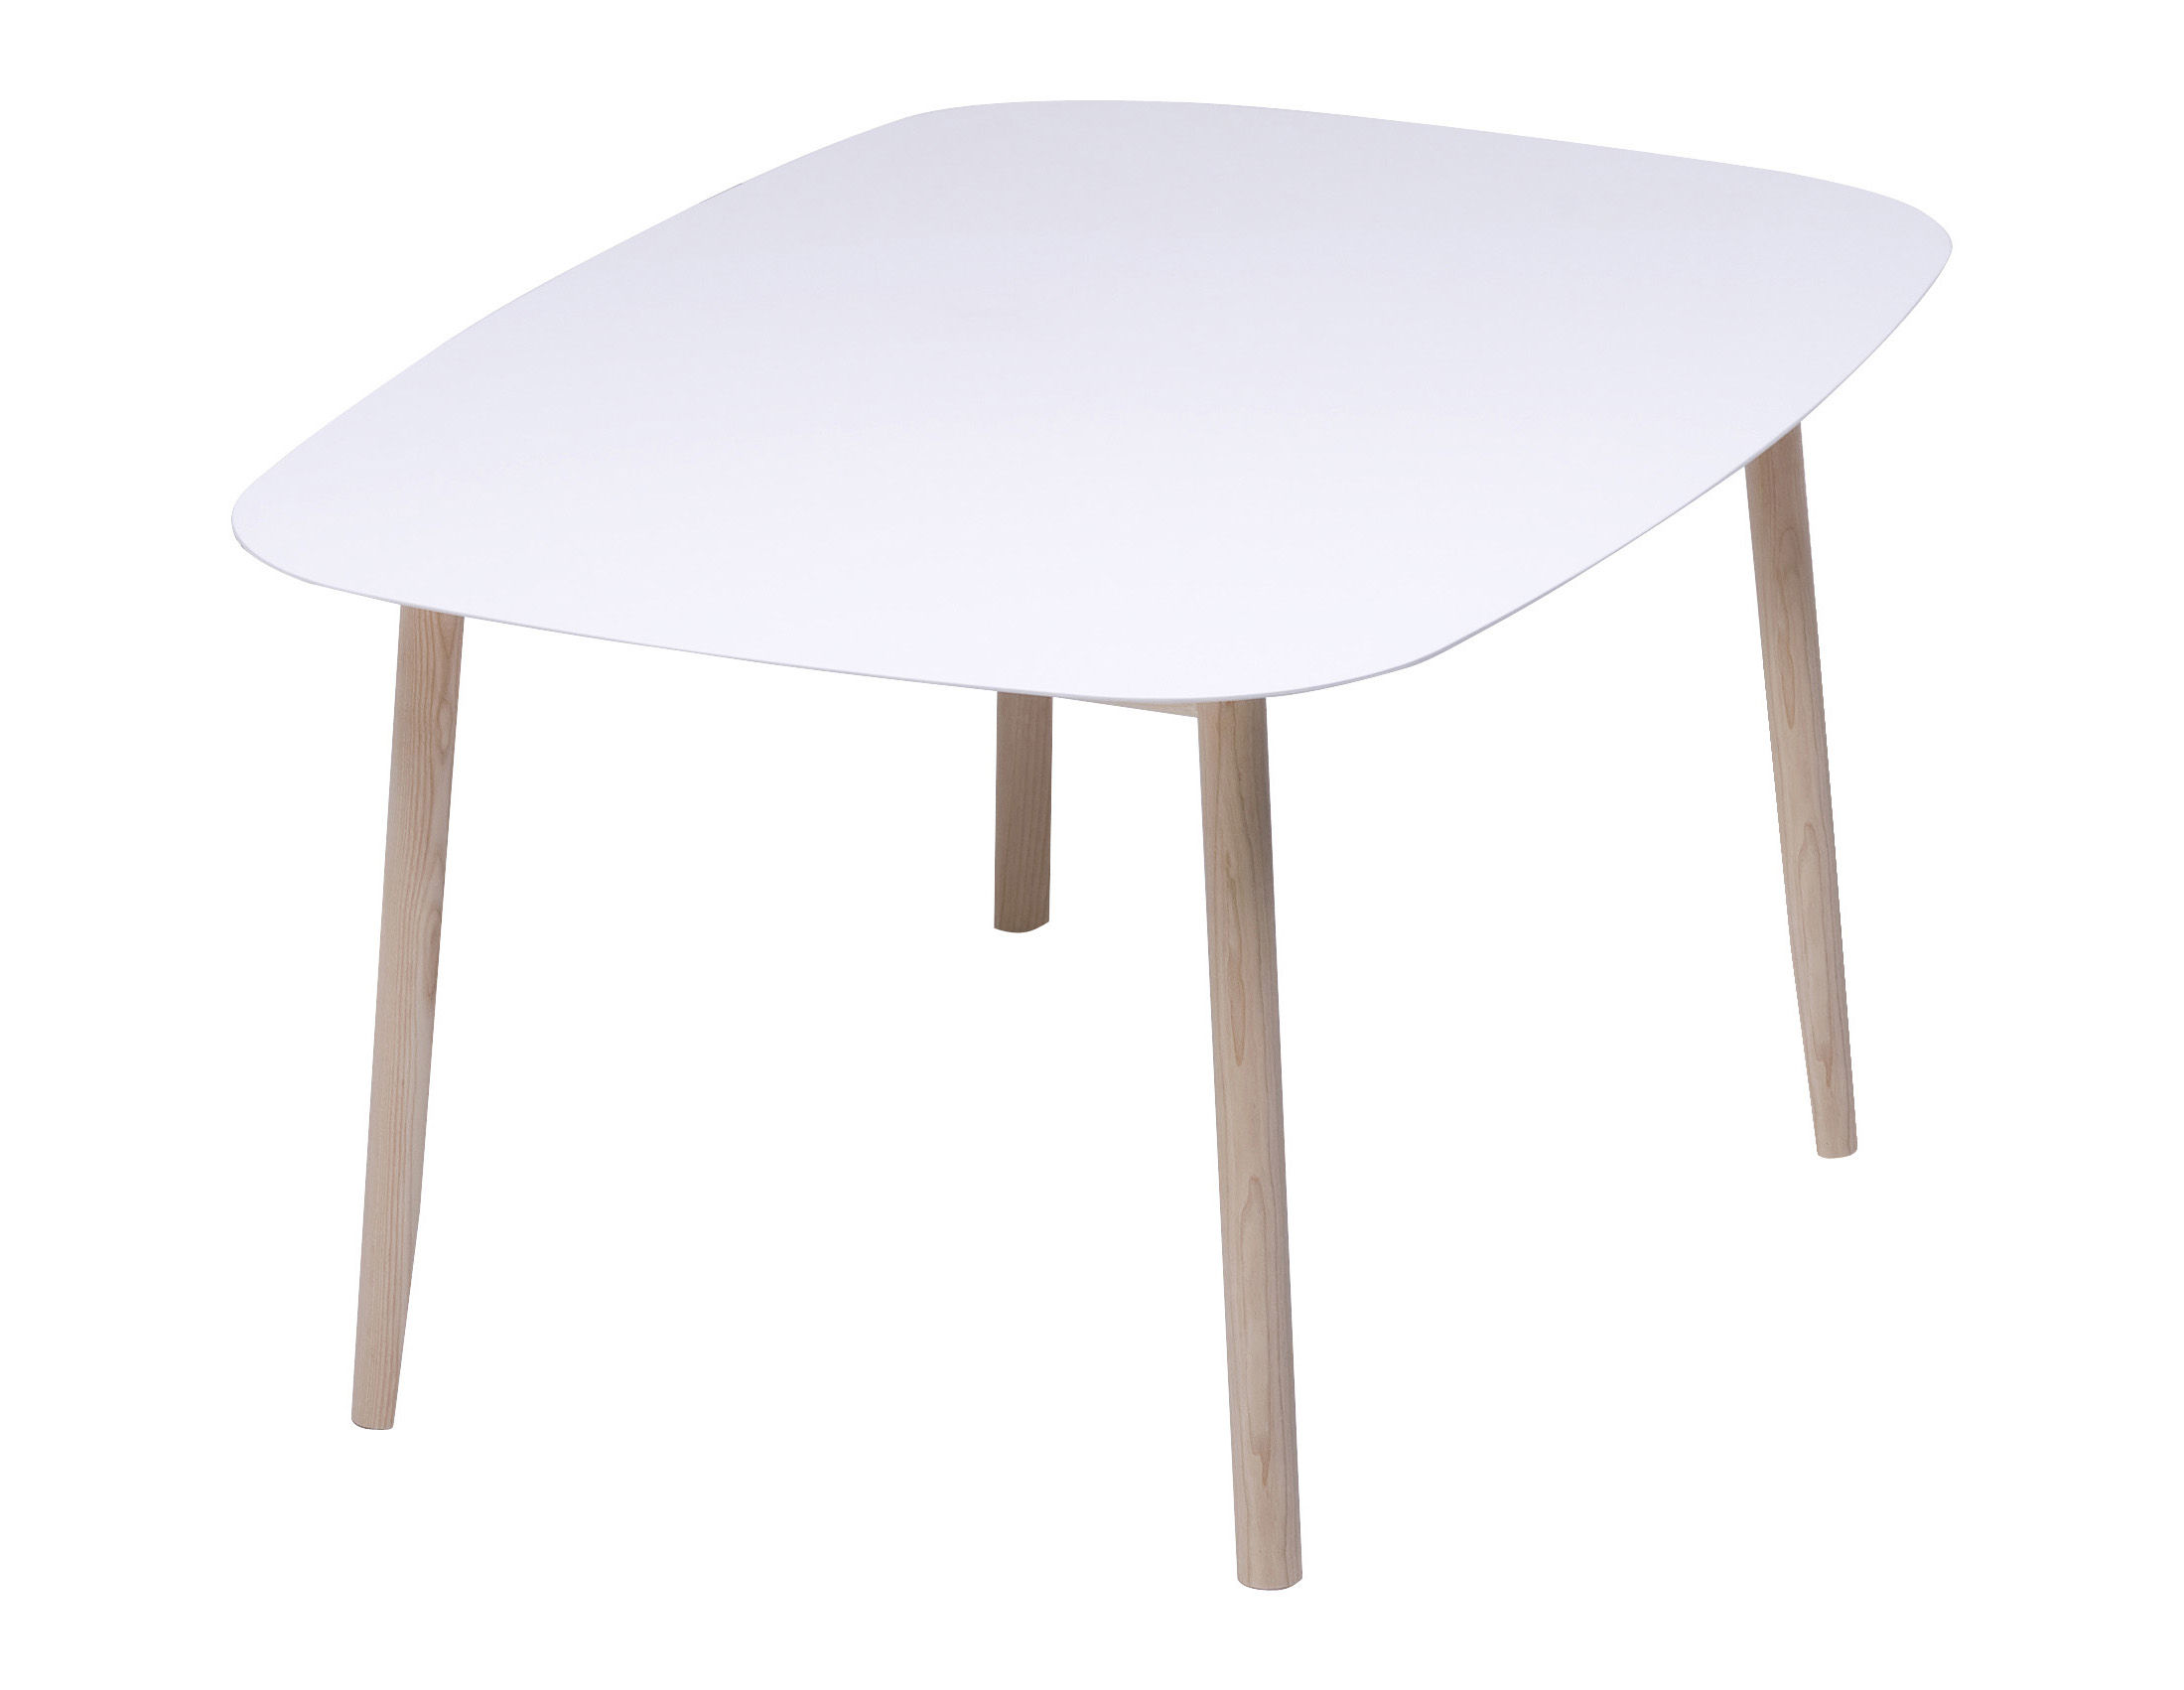 Branca table 110 x 150 cm 110 x 150 cm white lacquered for Table 150 cm